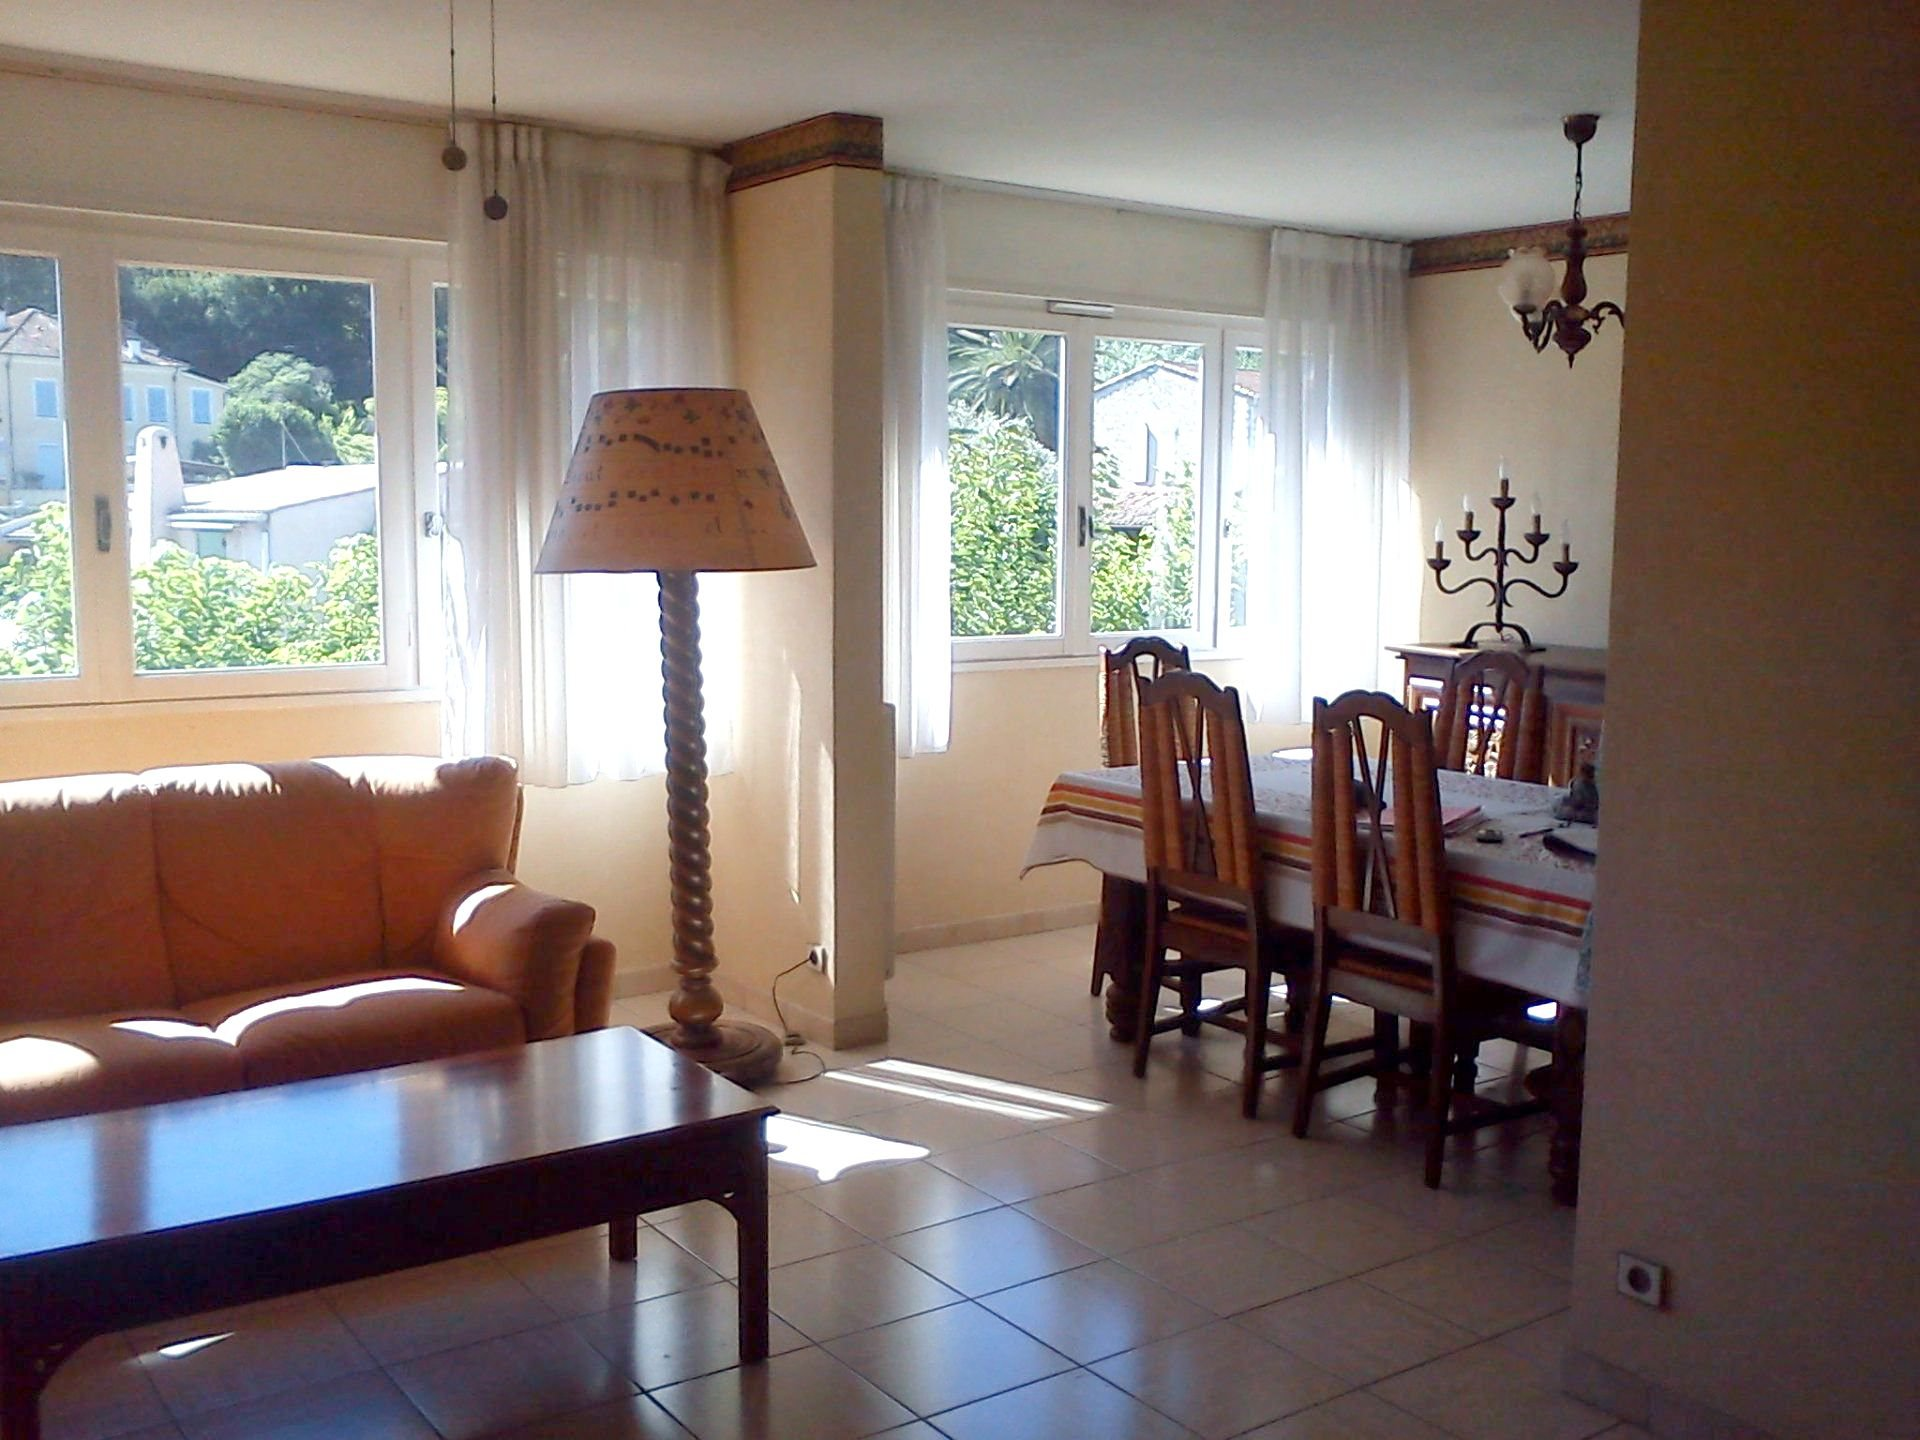 VILLENEUVE LOUBET VILLAGE - EXCLUSIVITE